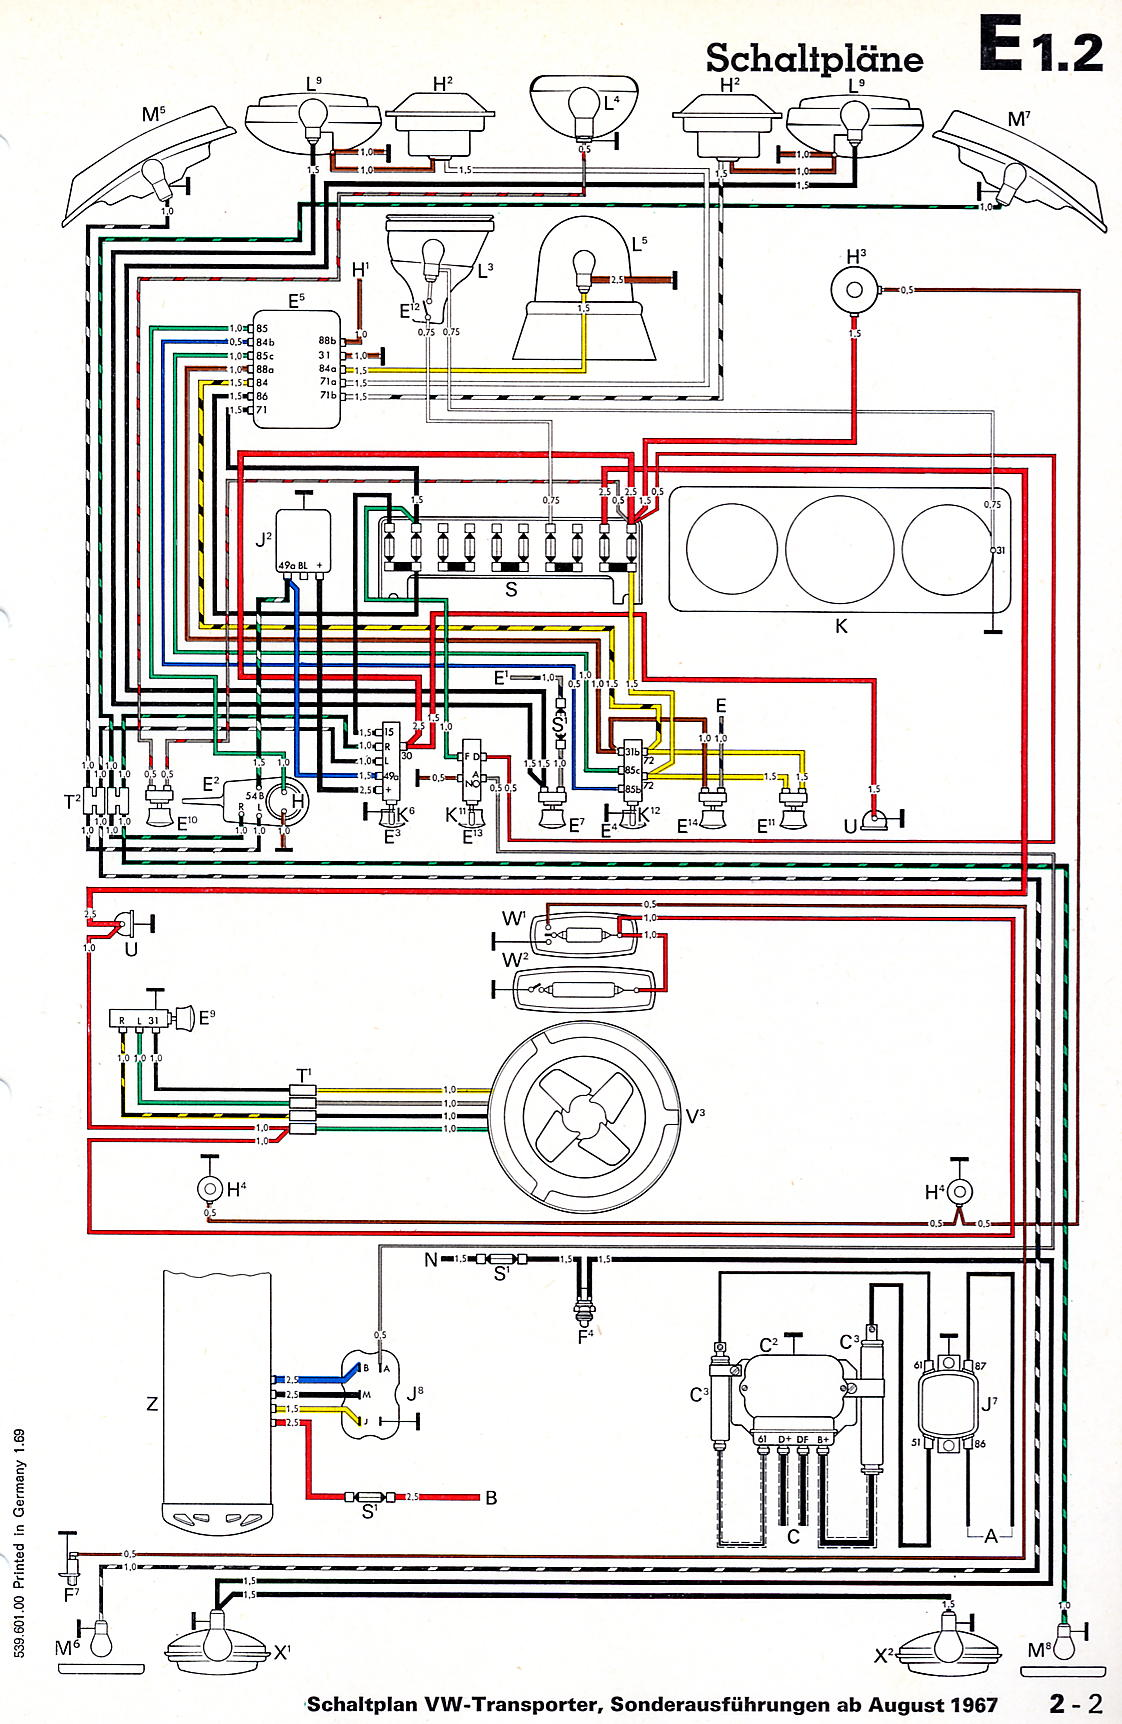 vw transporter t4 engine wiring diagram wiring diagrams and wiring diagram vw transporter t4 diagrams and schematics